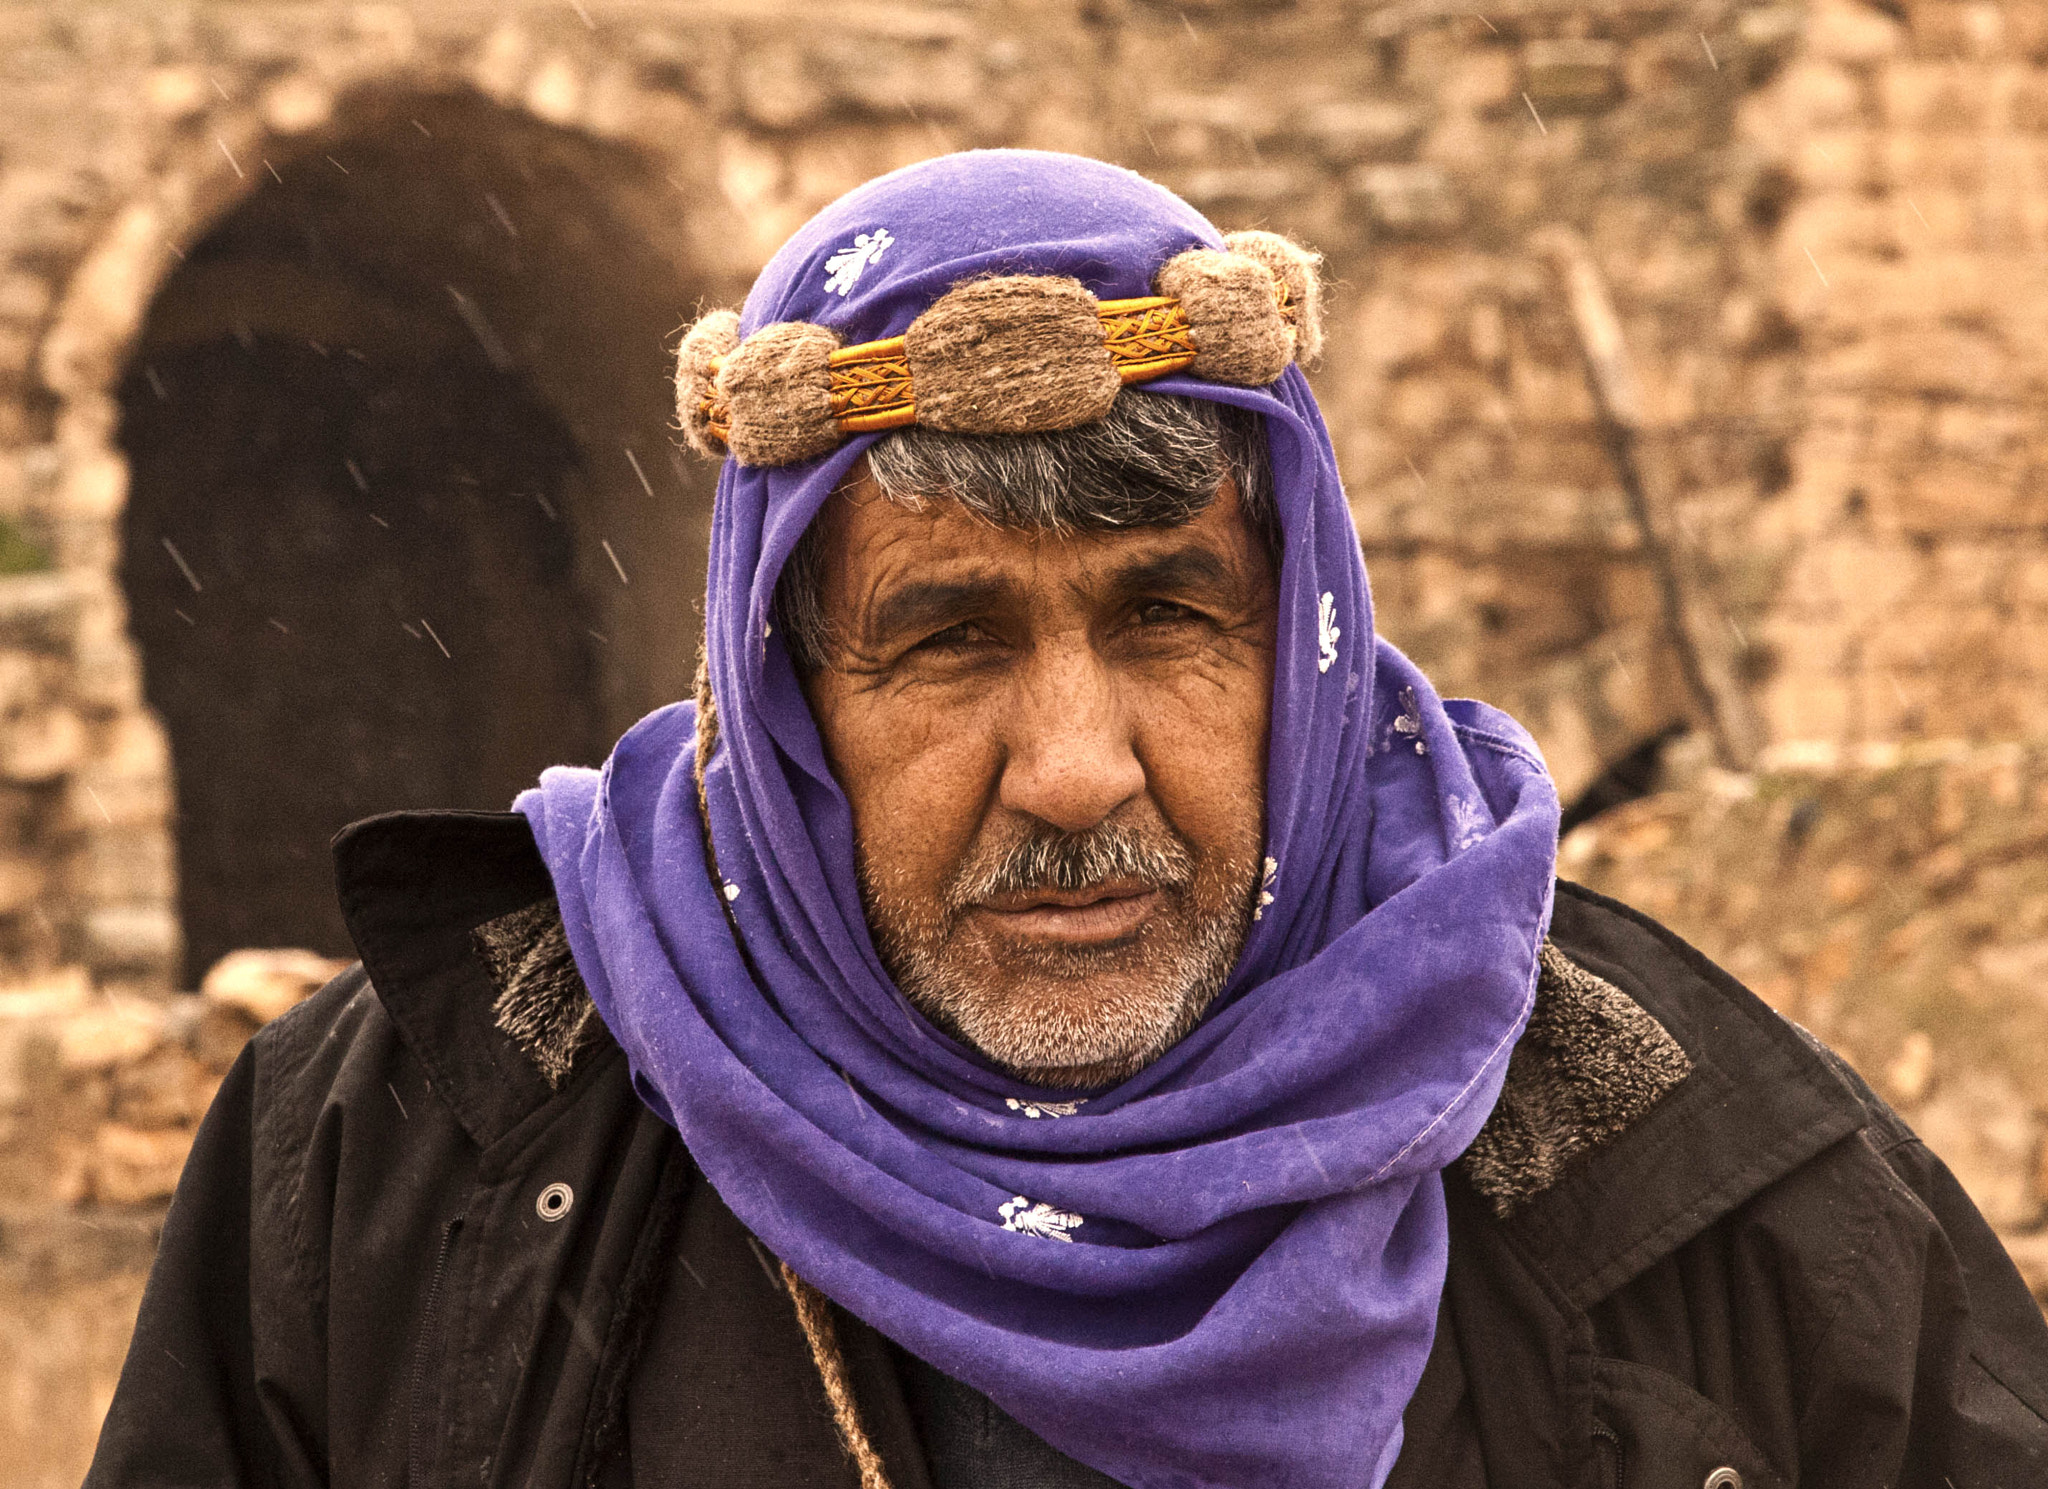 Photograph Man from Harran by Ahmet Yeşil on 500px